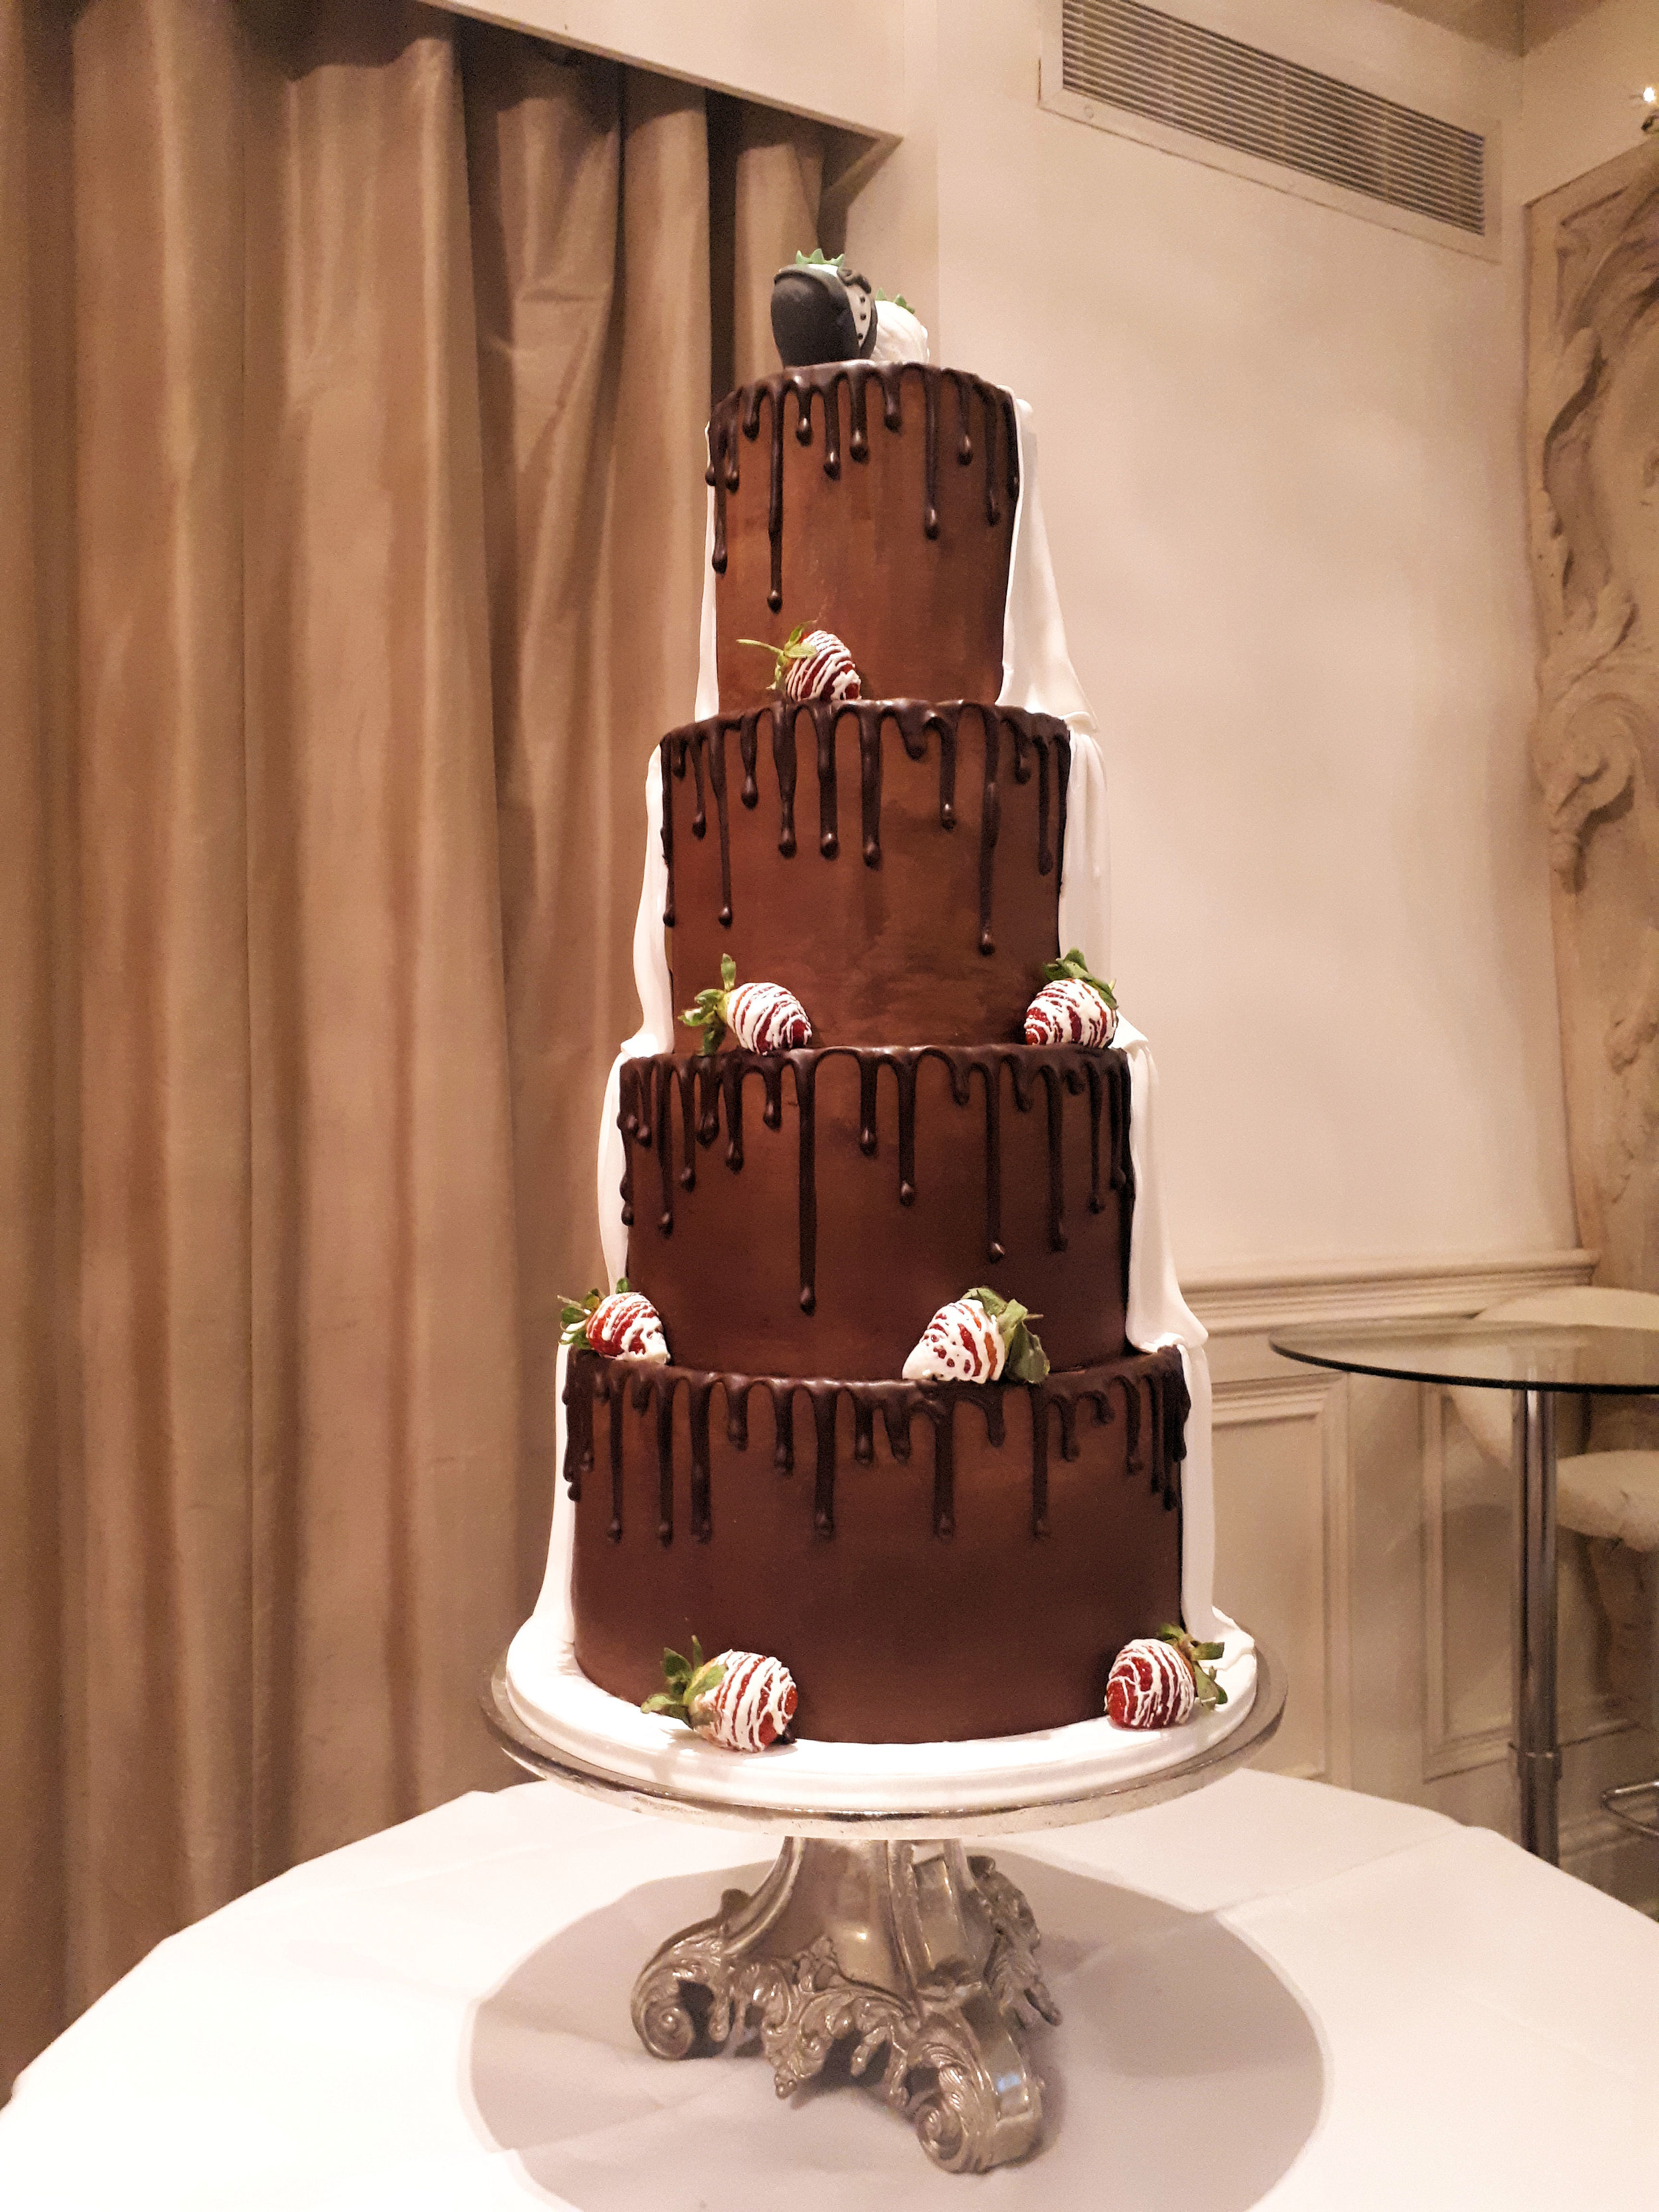 Half and half wedding cake 2.jpg